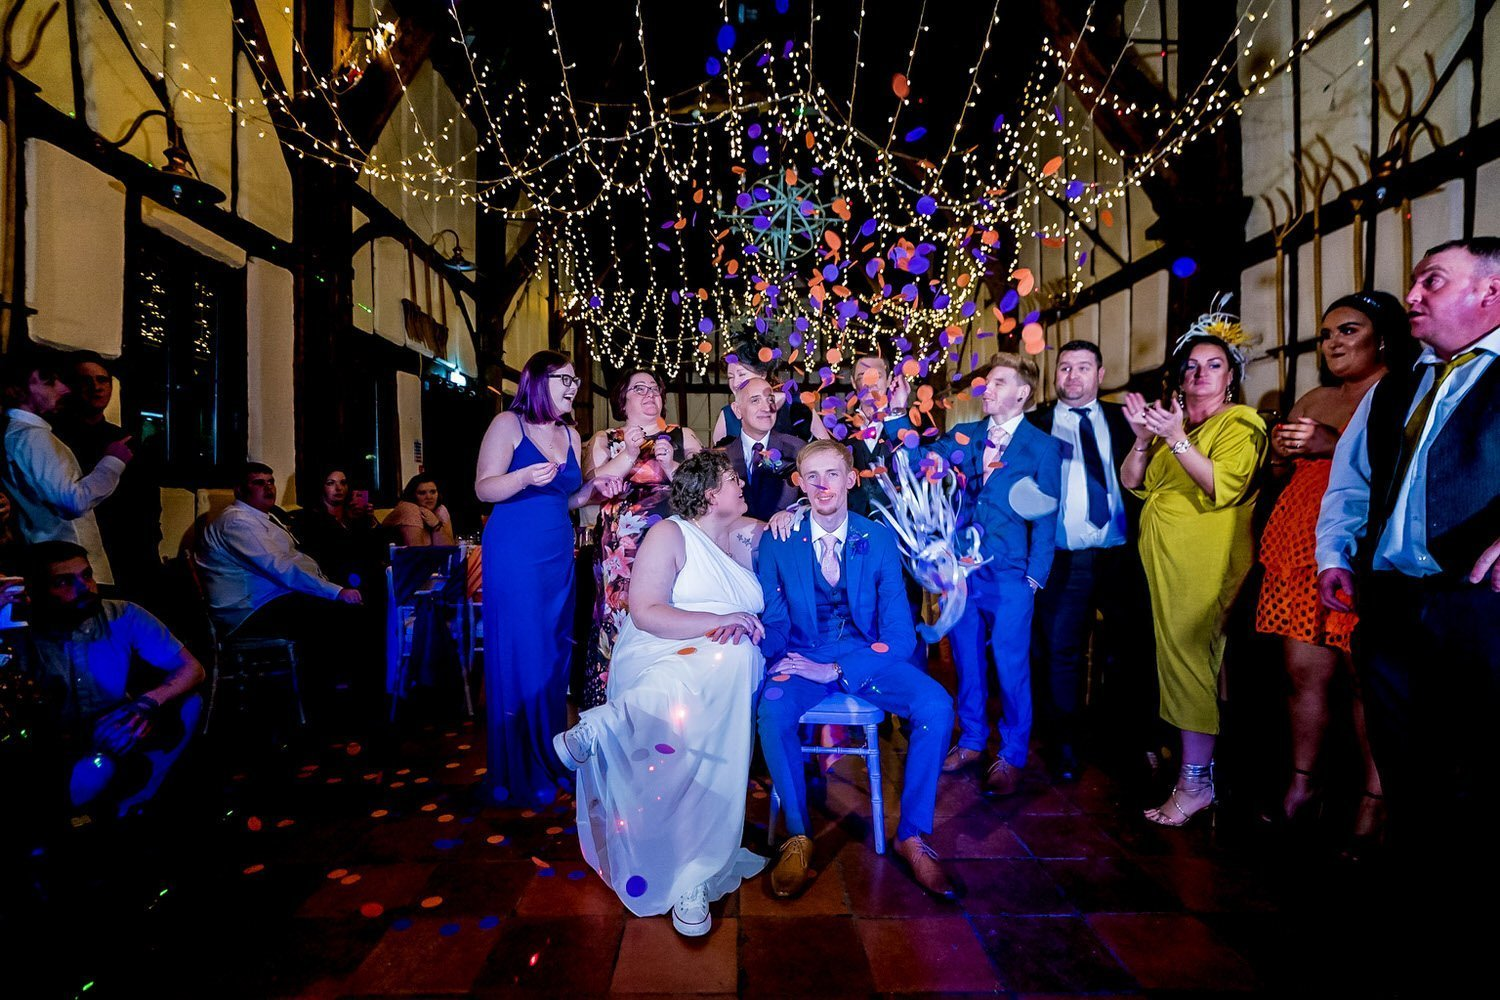 The Barns Hotel Bedford Wooten Weddings Photography Bride and groom on the dancefloor with confetti falling around them